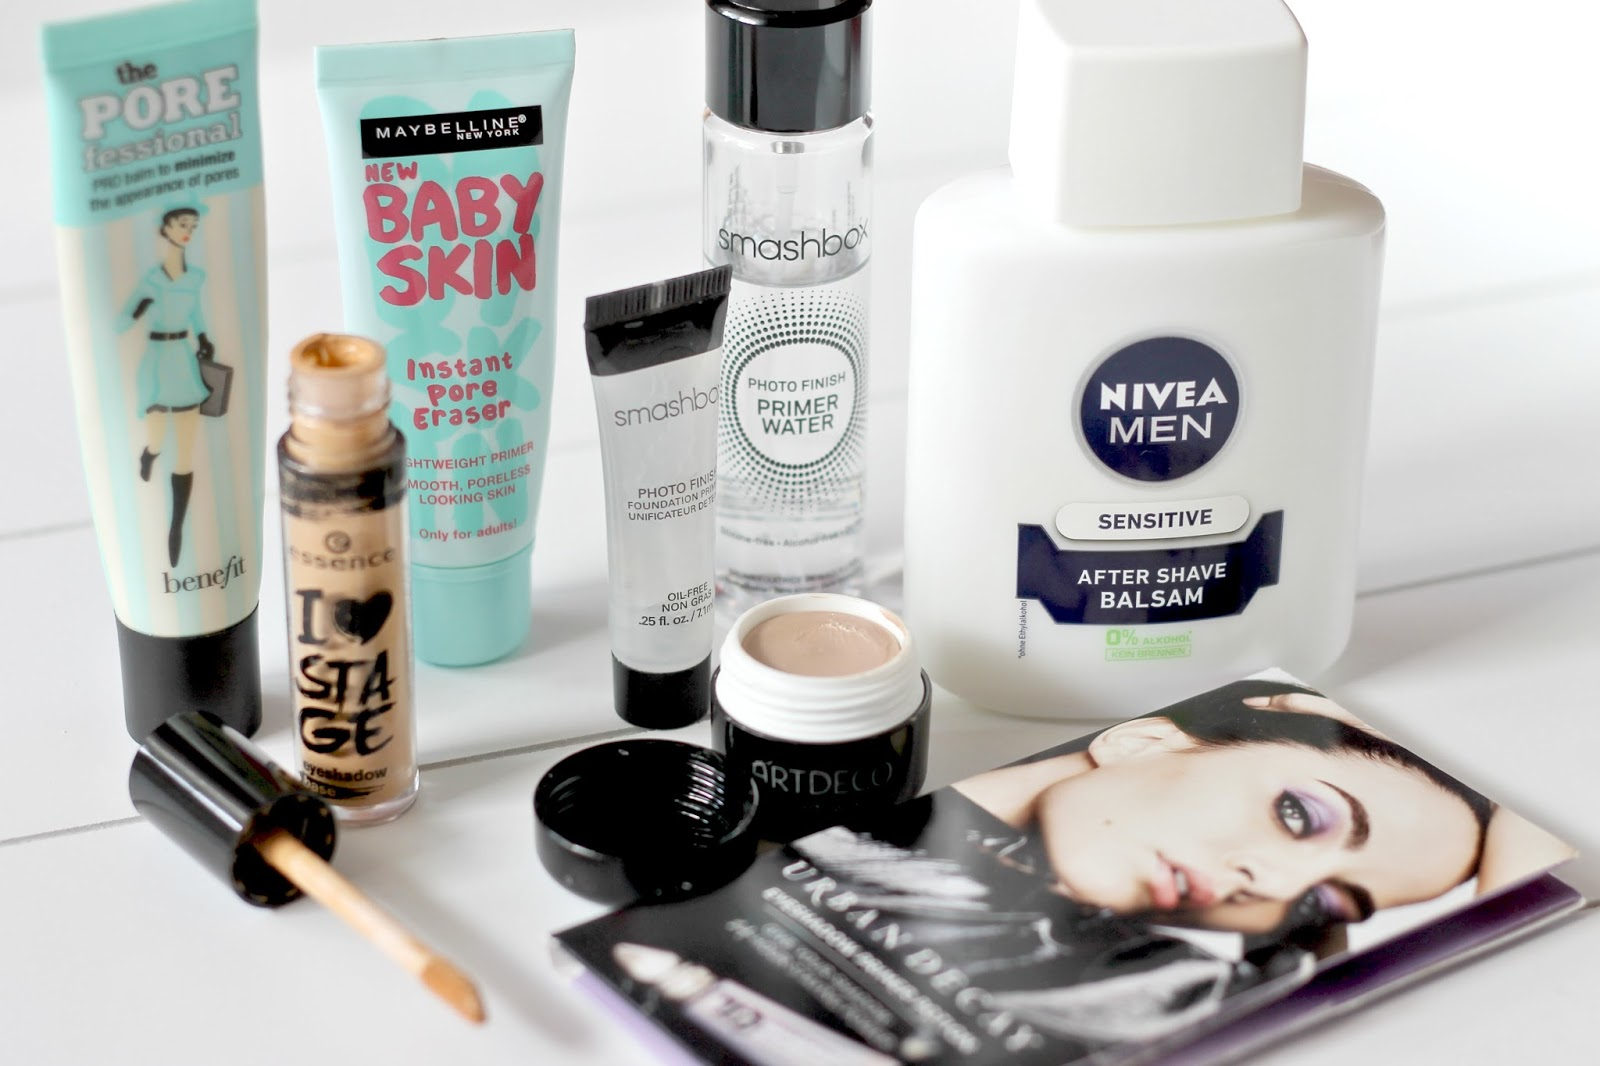 The Primer Tag Flatlay 1